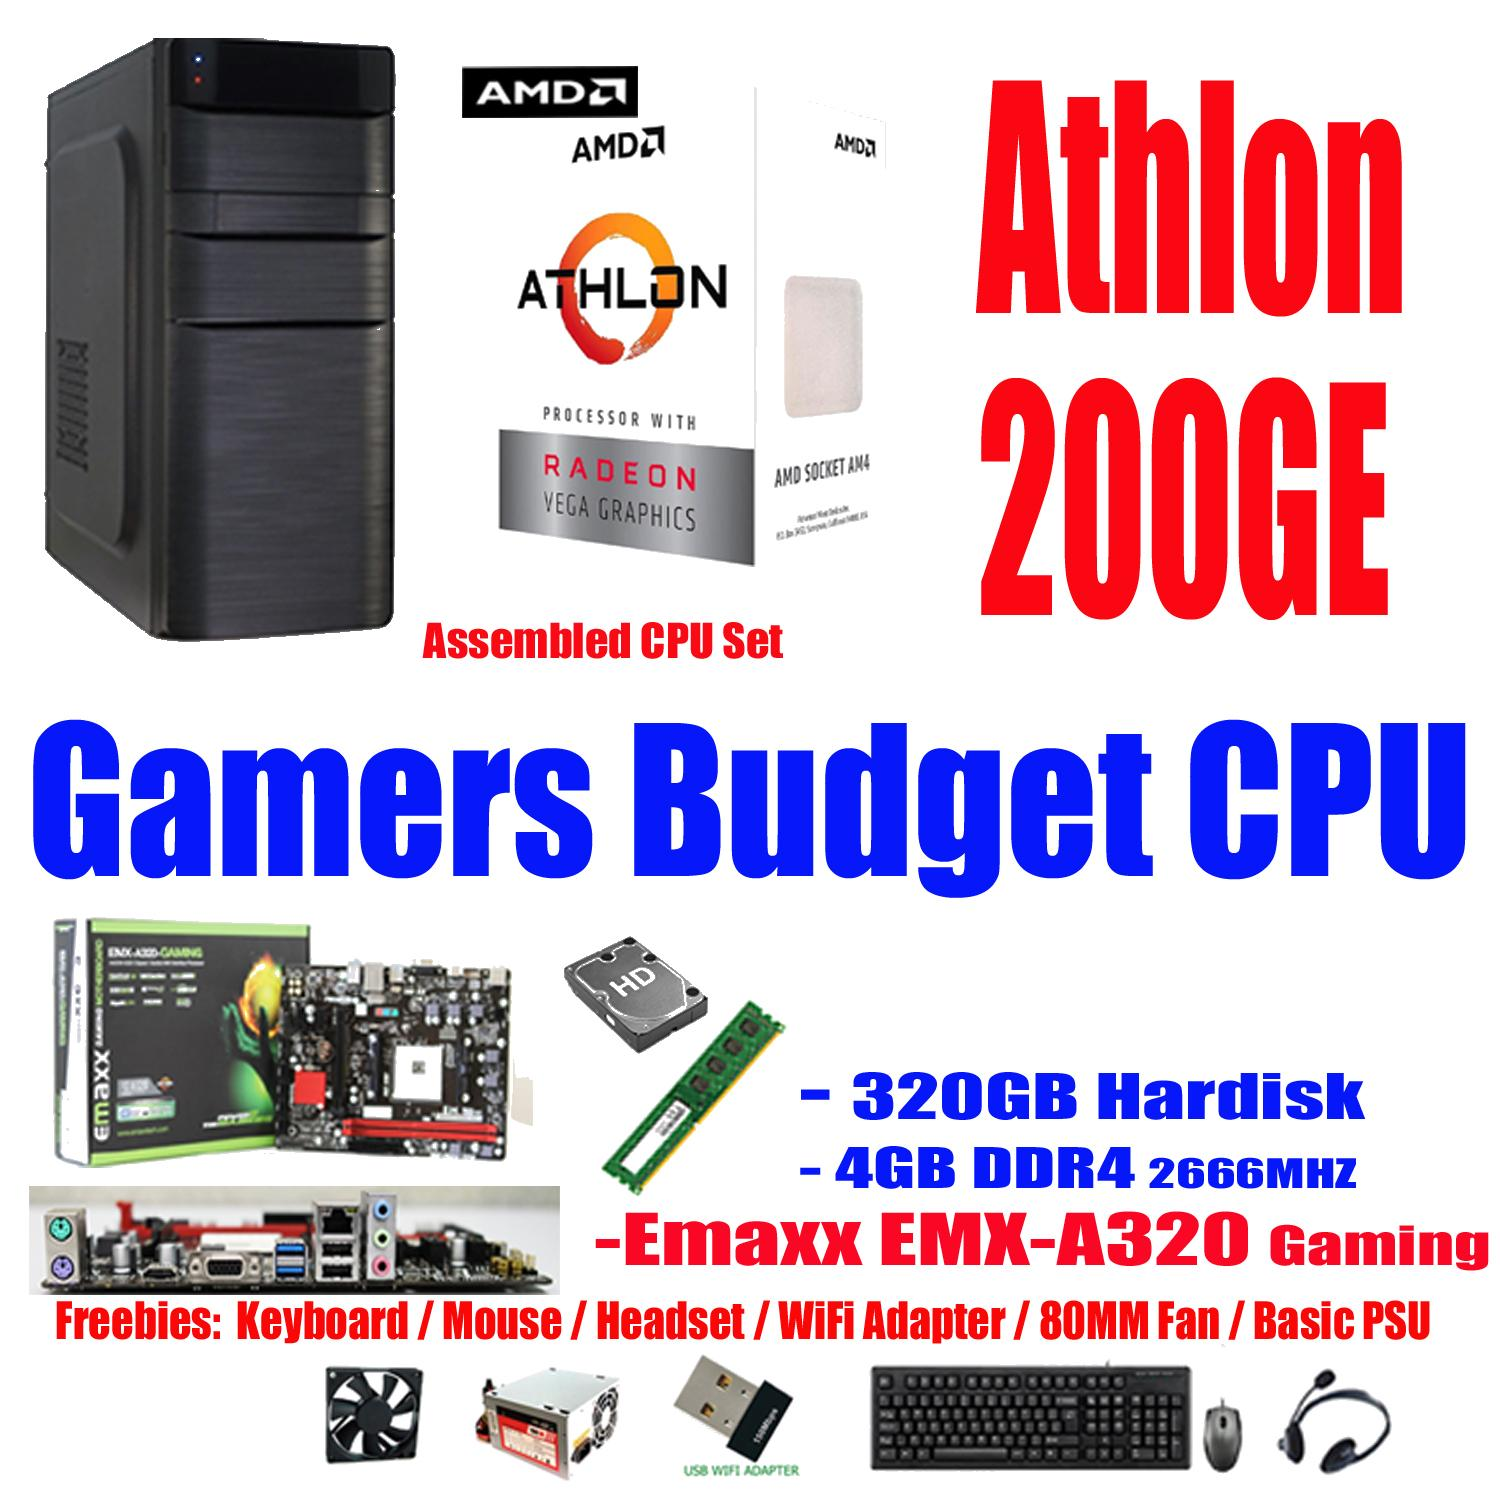 Emaxx CPU 320GB - 4GB , AMD Athlon 200GE 2-Core, 4-Thread, 3.2GHz 35W. (Alternative to: Intel Core i3-8100 i3-7100 Pentium G4560 G4600 G5400 Celeron G4930 AMD Kaveri a8-7650k a6-7400k richland a4-6300 Bristol Ridge A8-9600 A10-9700 A6-9500 )